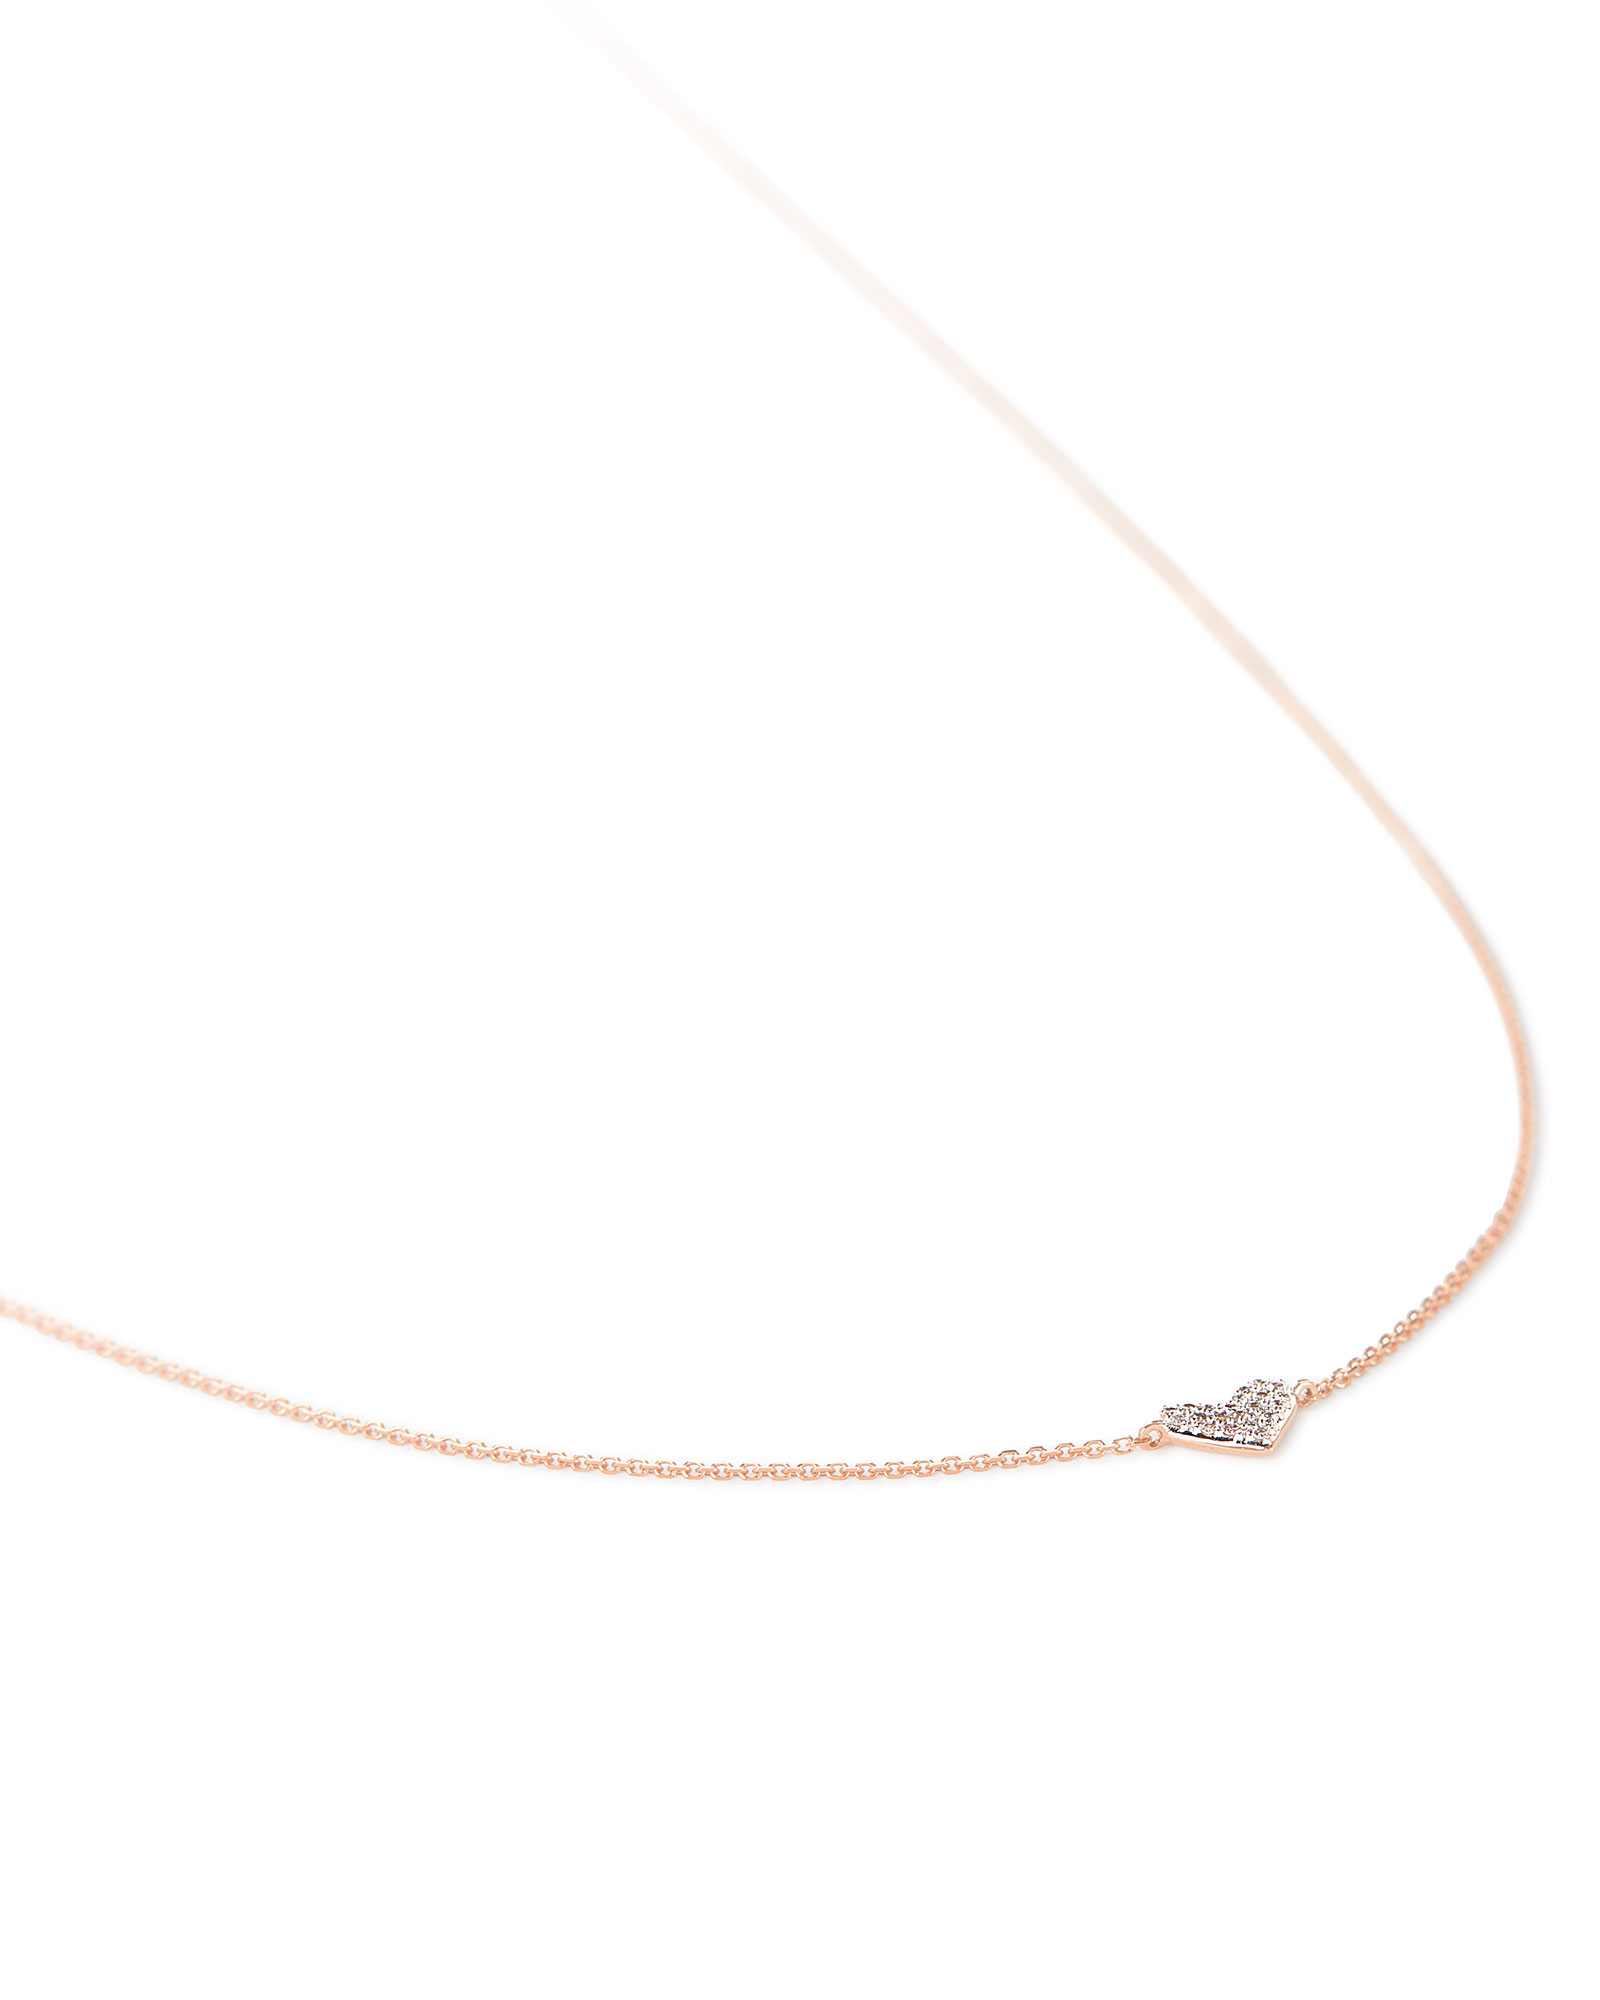 Heart 14k Rose Gold Pendant Necklace in White Diamonds